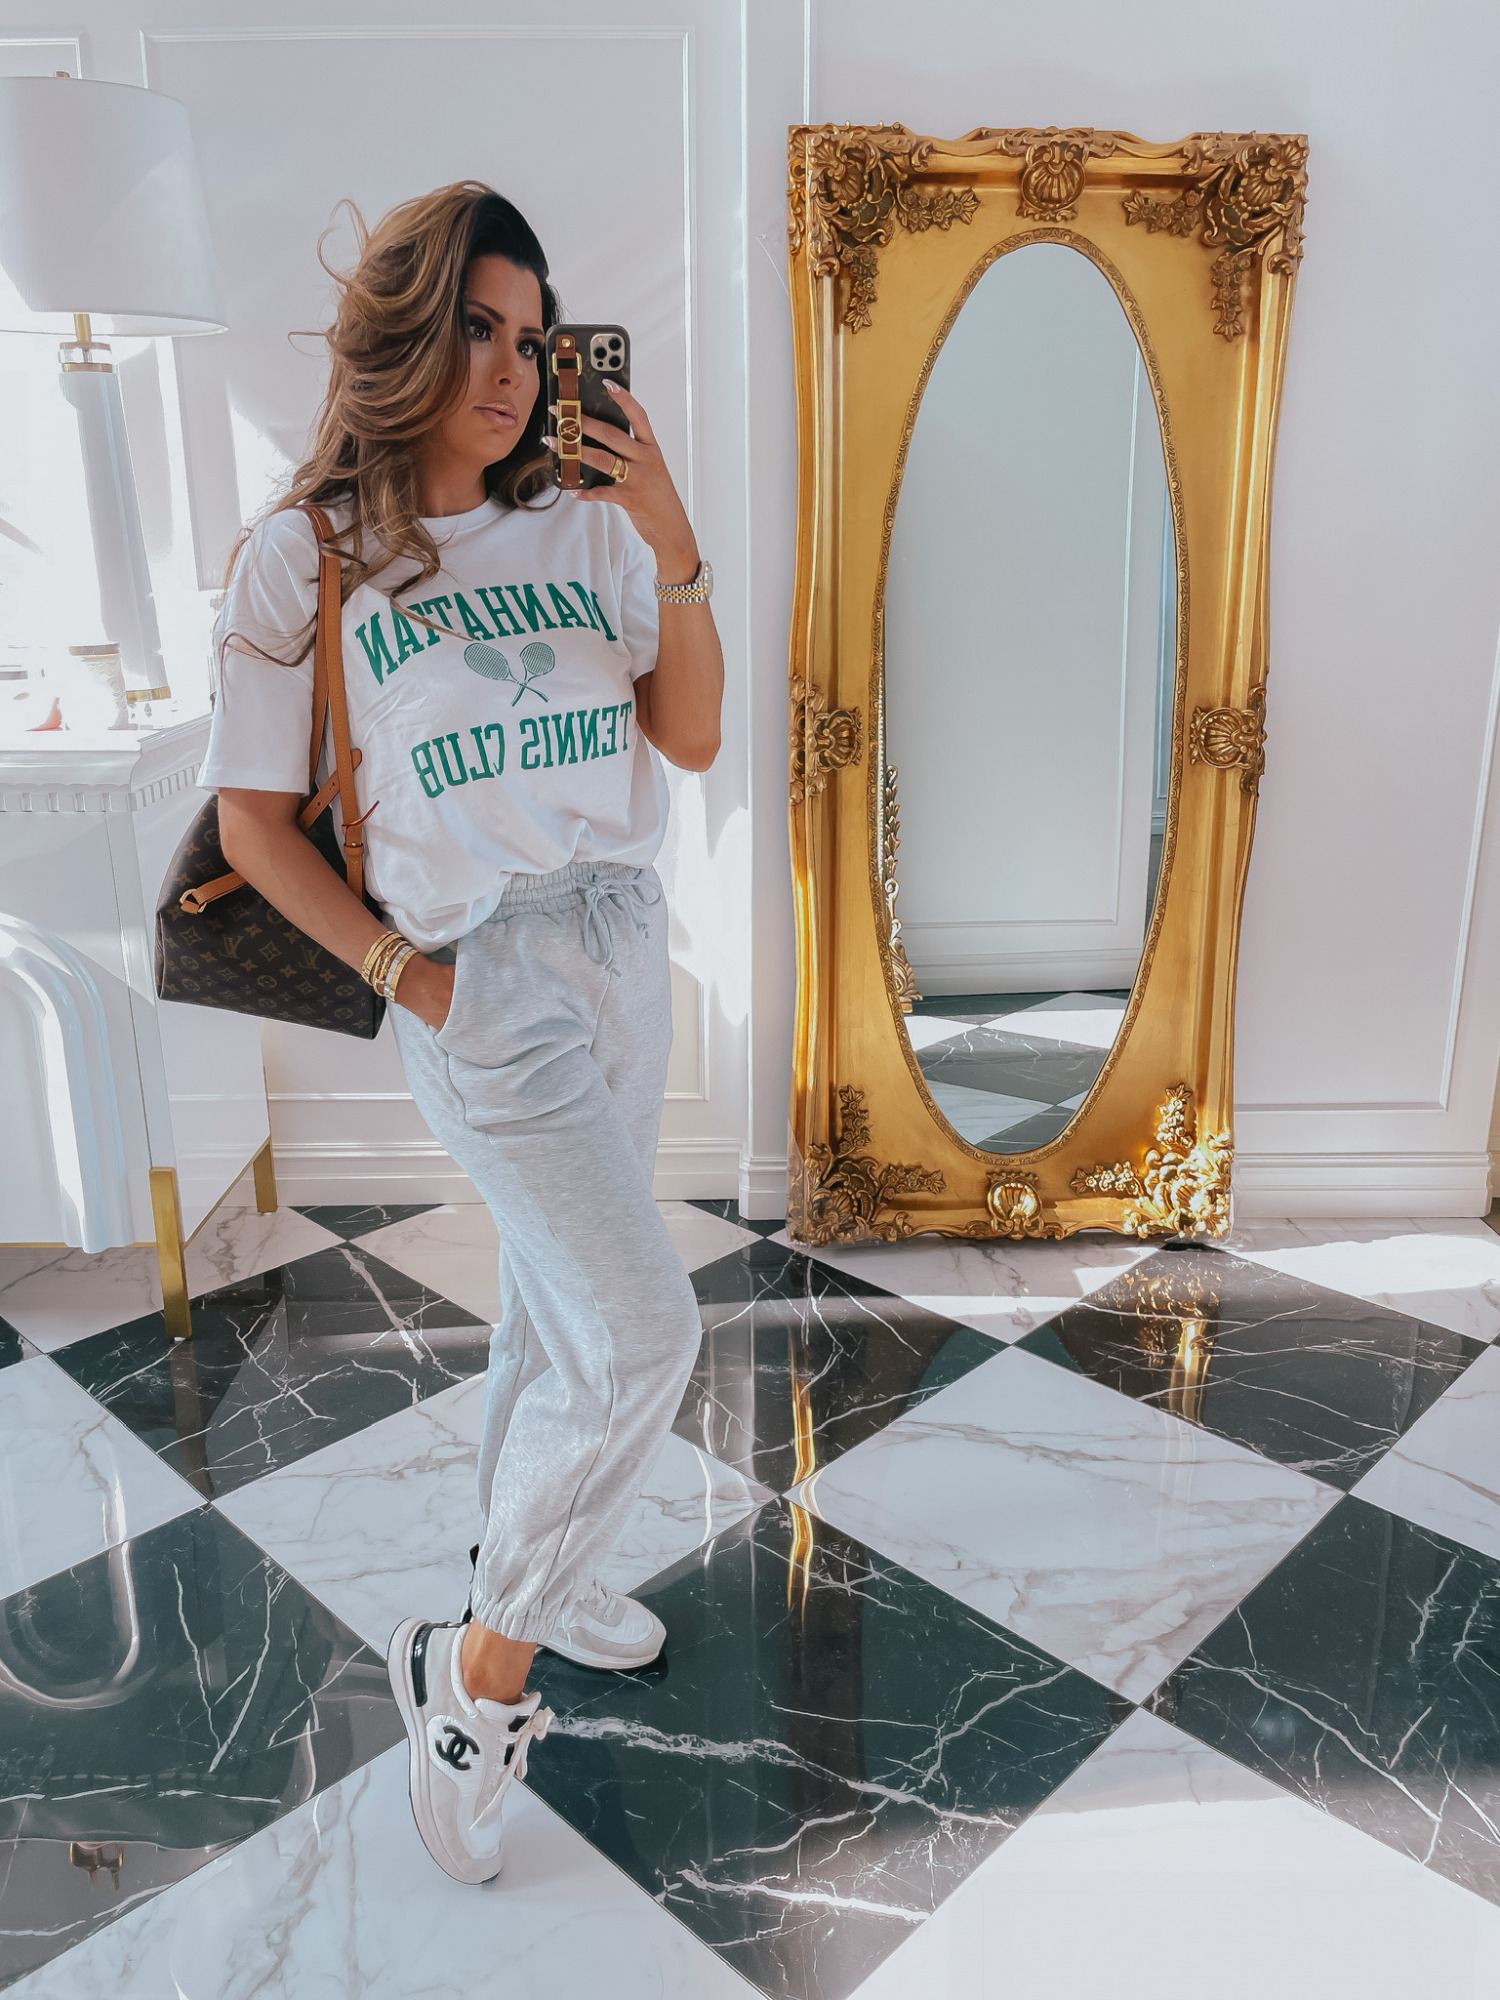 Emily-ann-gemma-abercrombie-tee-shirt-sweatpants-outfit-ltk-day-sale | LTK Sales by popular US fashion blog, The Sweetest Thing: image of Emily Gemma wearing a Manhattan Tennis Club shirt, grey sweatpants and sneakers.